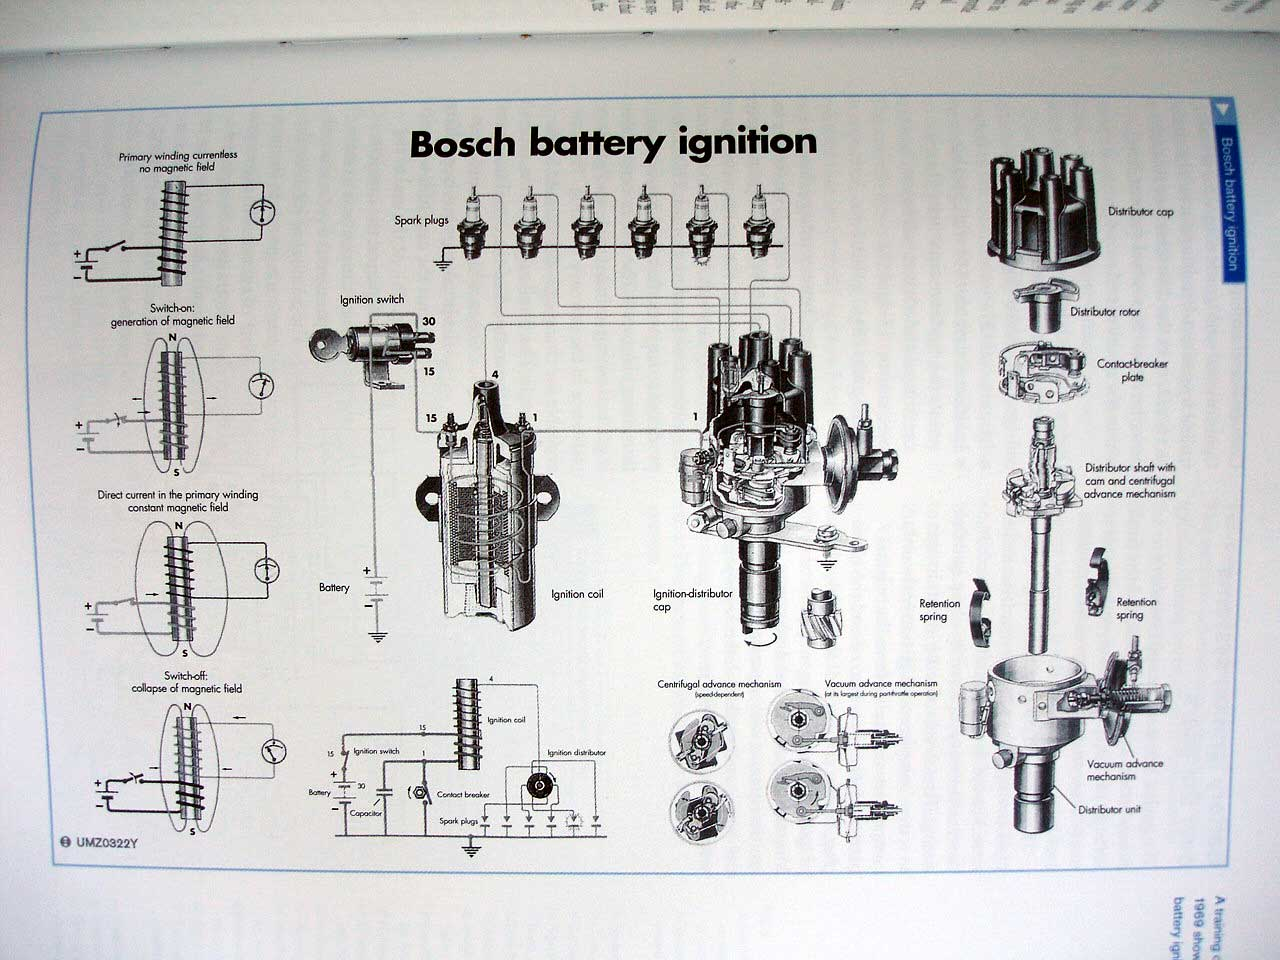 Understanding the Ignition System on tesla coil diagram, ignition wiring diagram for 2000 chevy malibu, ignition interlock wiring-diagram, ignition wiring diagram for mazda protege, 98 lincoln navigator ignition coil diagram, ignition coil circuit diagram, ignition control module 1994 ford mustang, car ignition coil diagram, vw ignition wiring diagram, auto fuel system diagram, ignition coil wire harness,